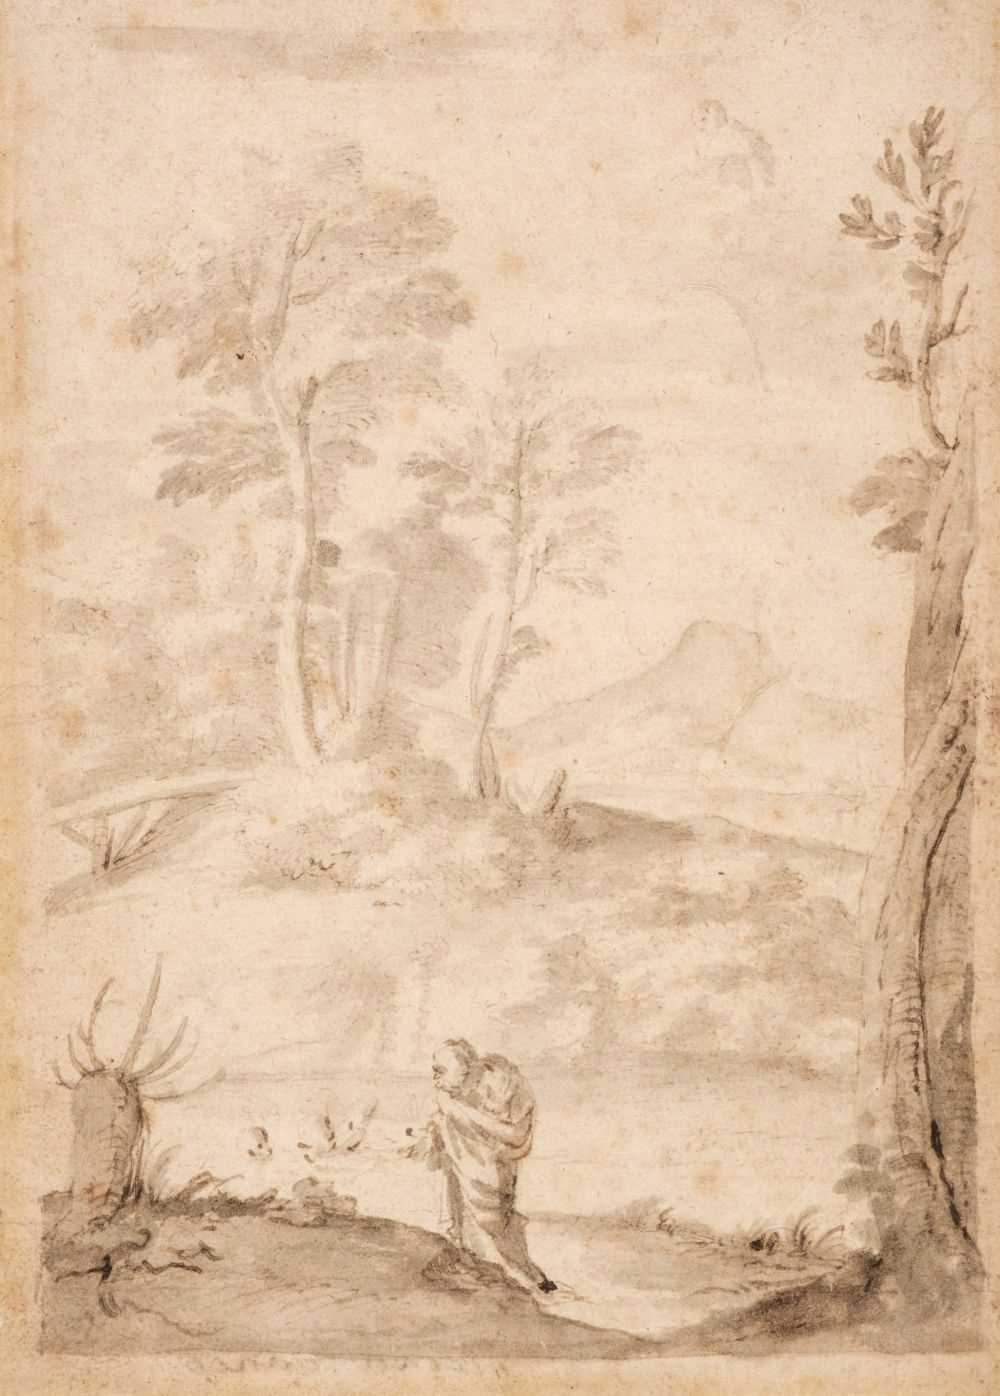 Lot 13 - Lanfranco, Giovanni, Follower of (1582-1647), St Anthony in the Wilderness, pen, ink and wash